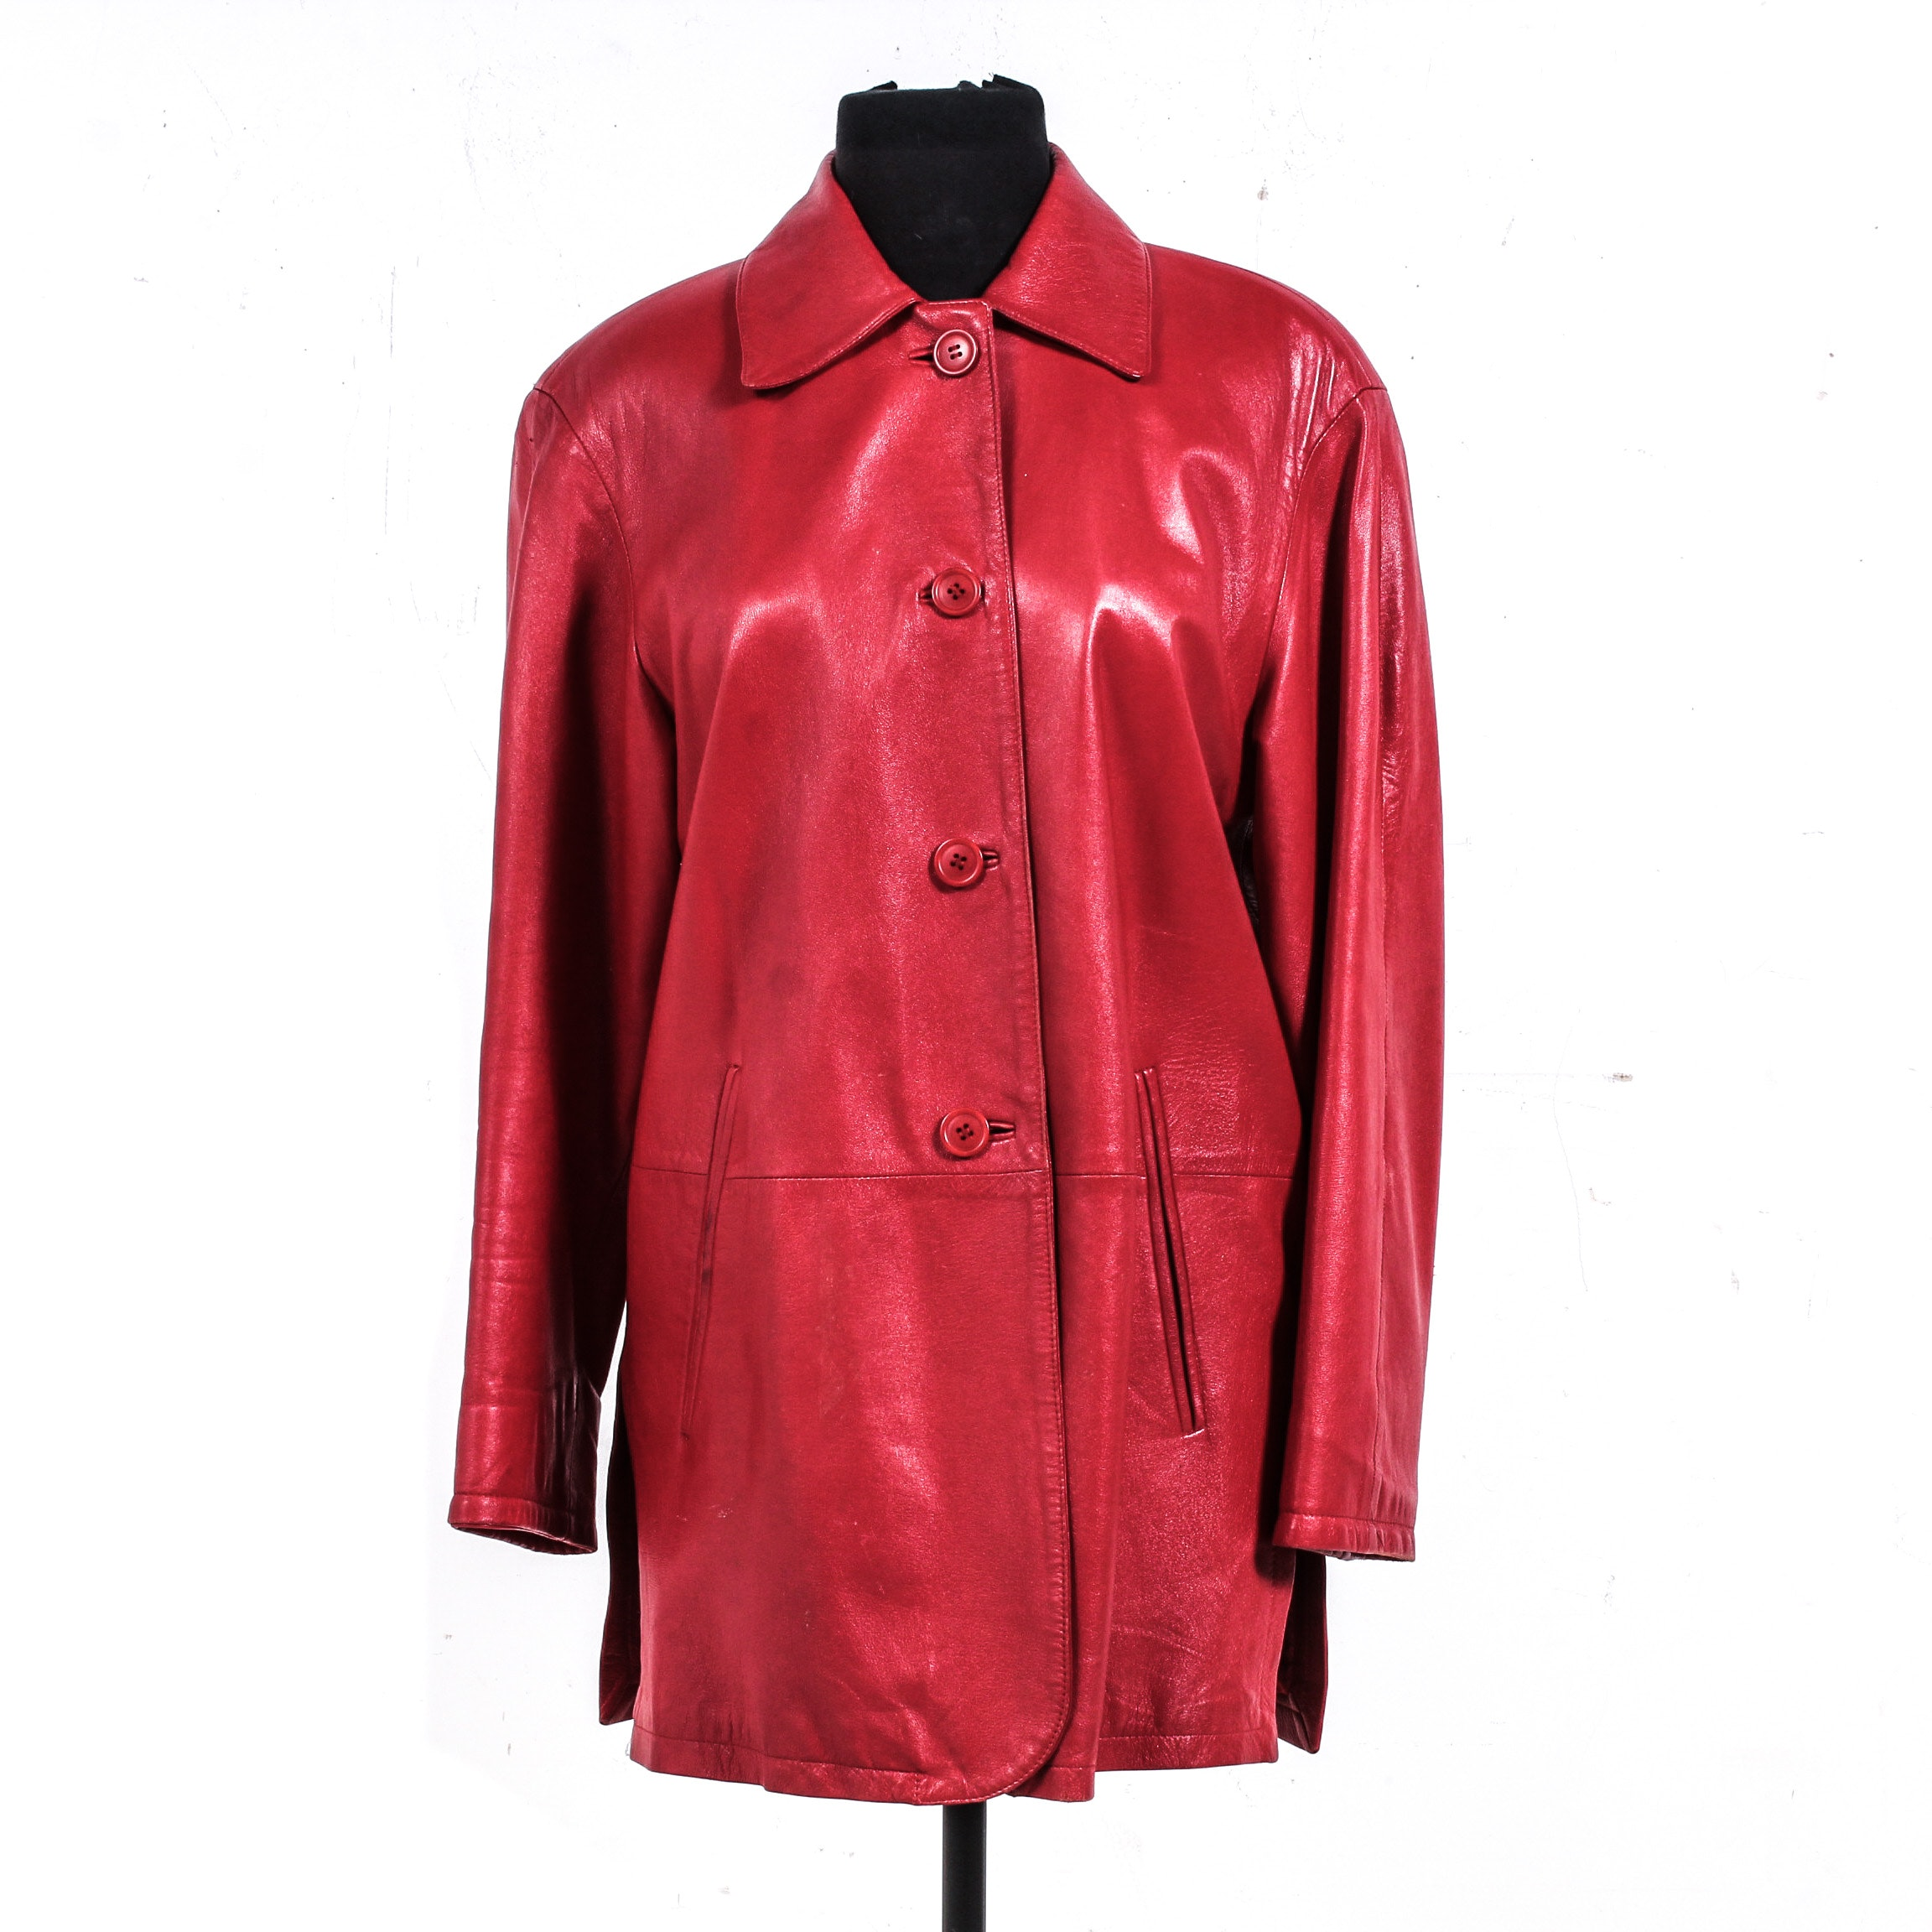 Italian Vera Pelle Red Leather Jacket